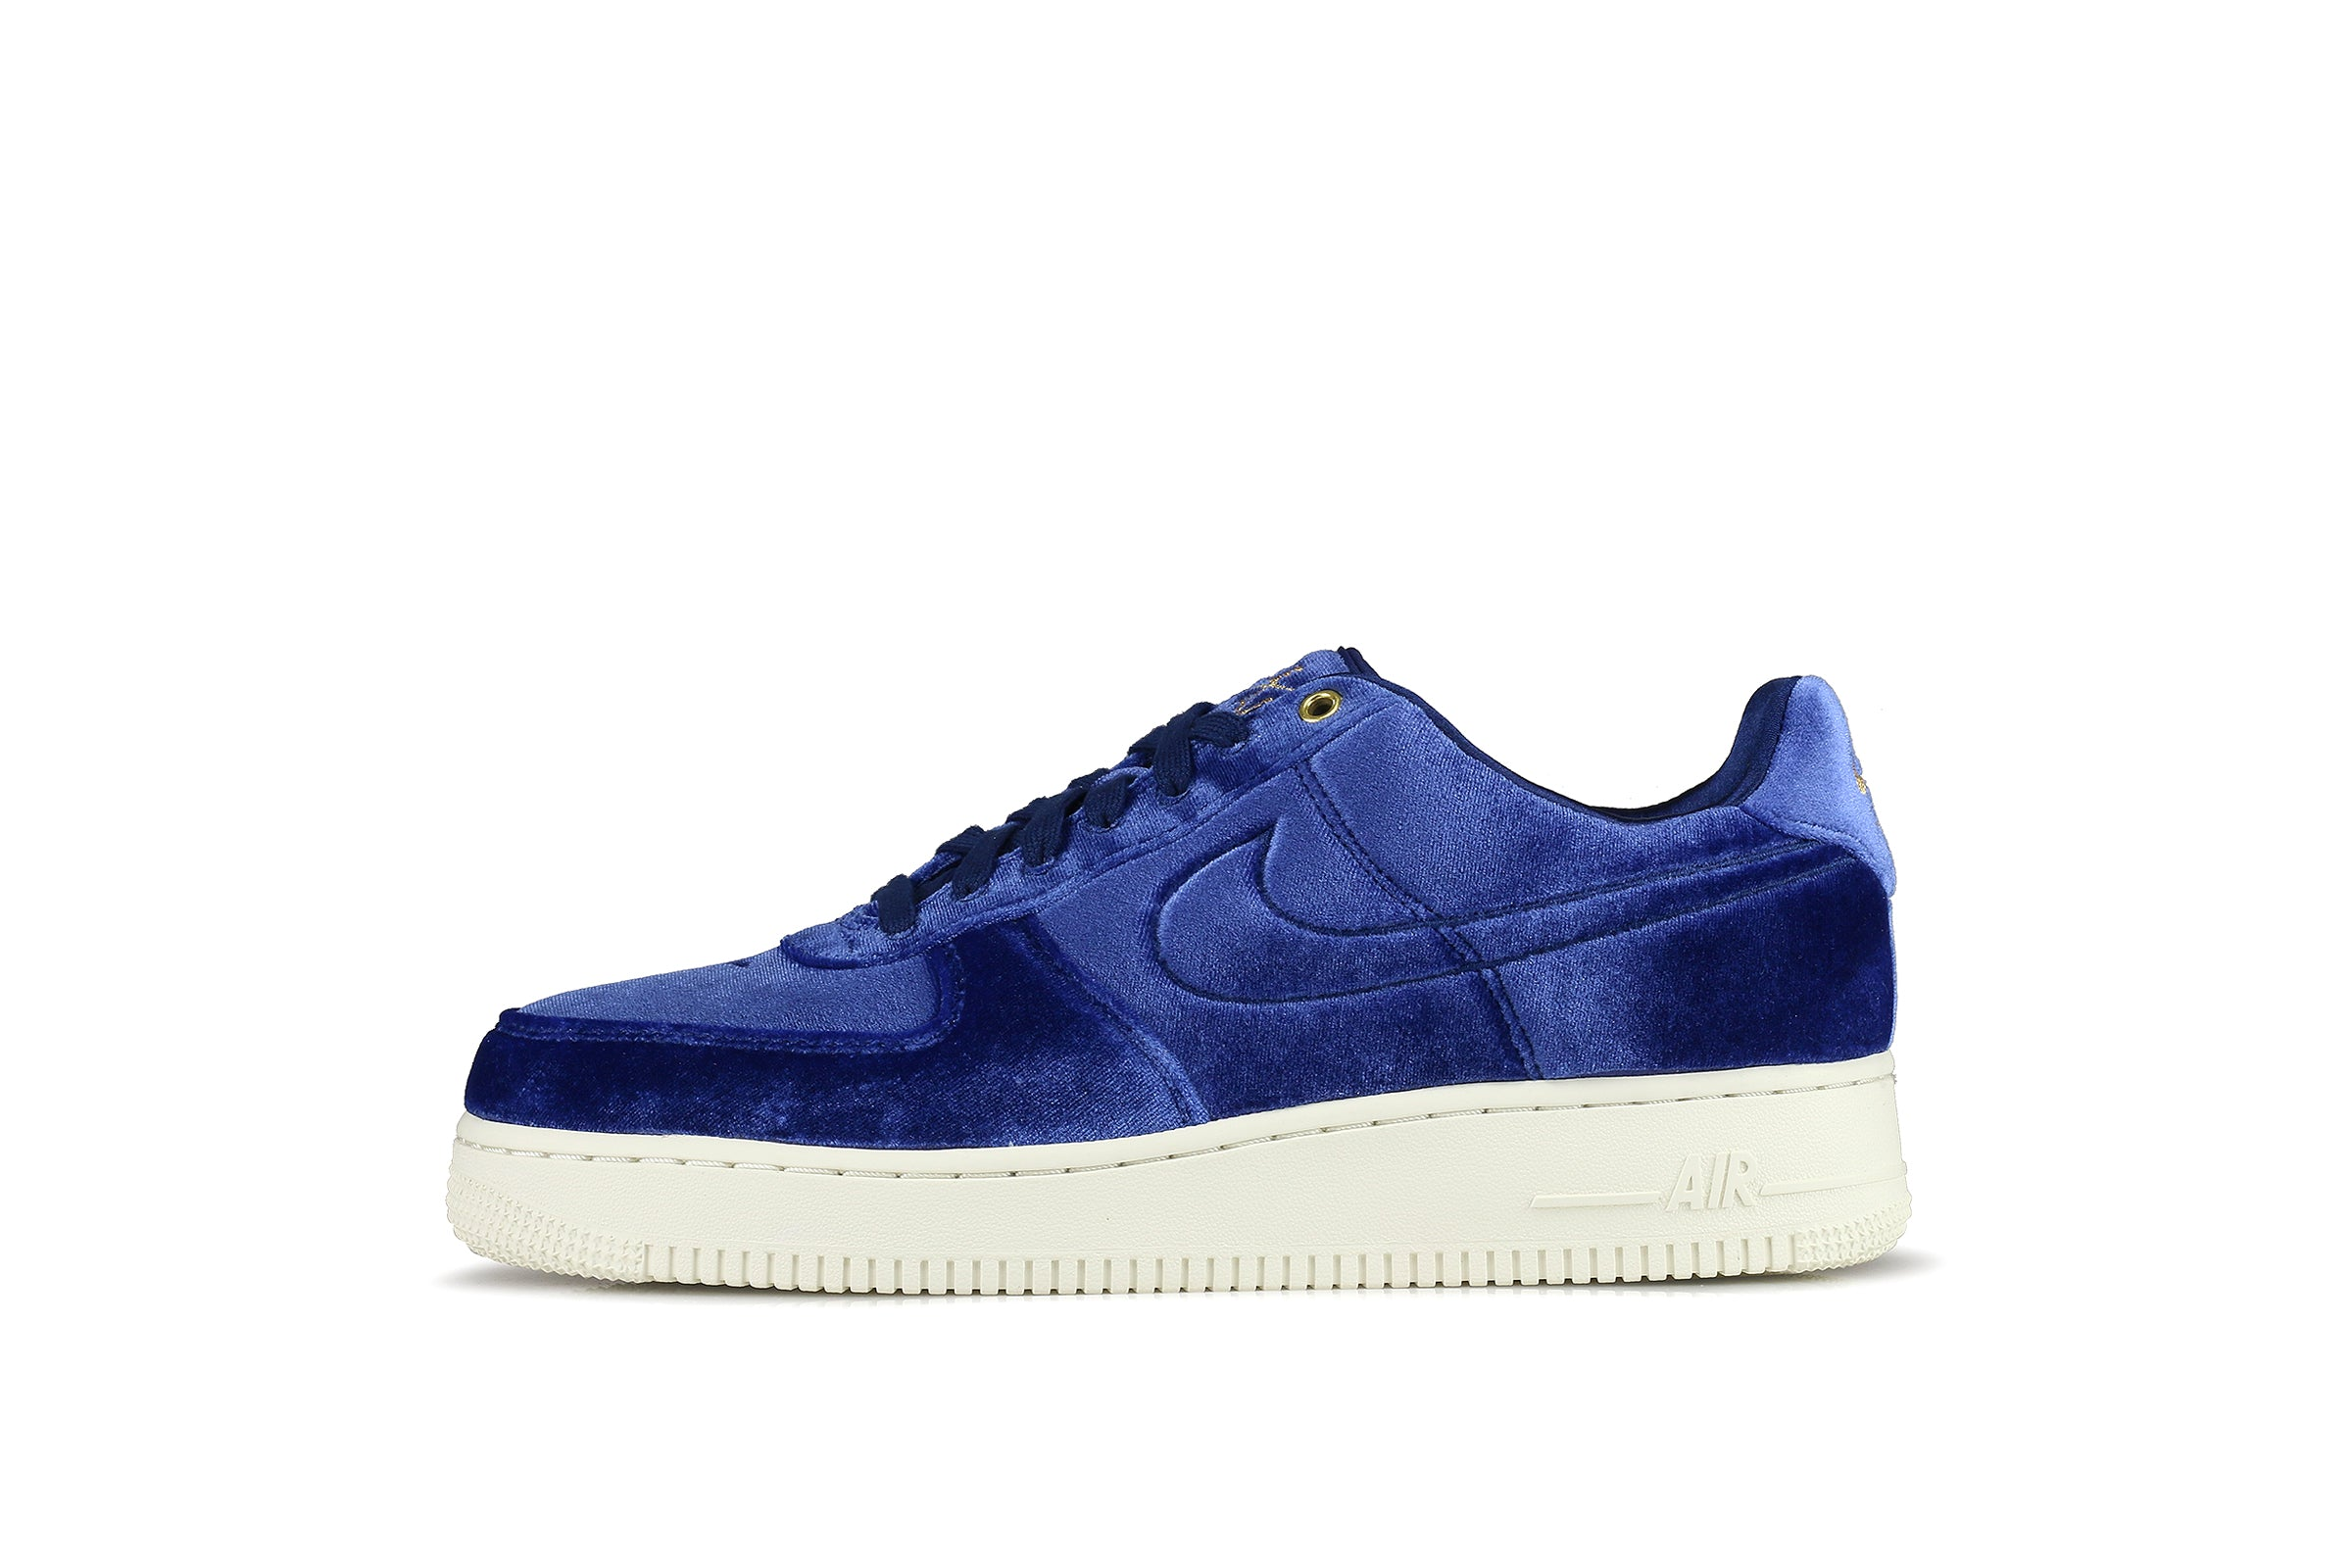 e0e92b9c0a8 Nike Air Force 1 '07 Premium 3